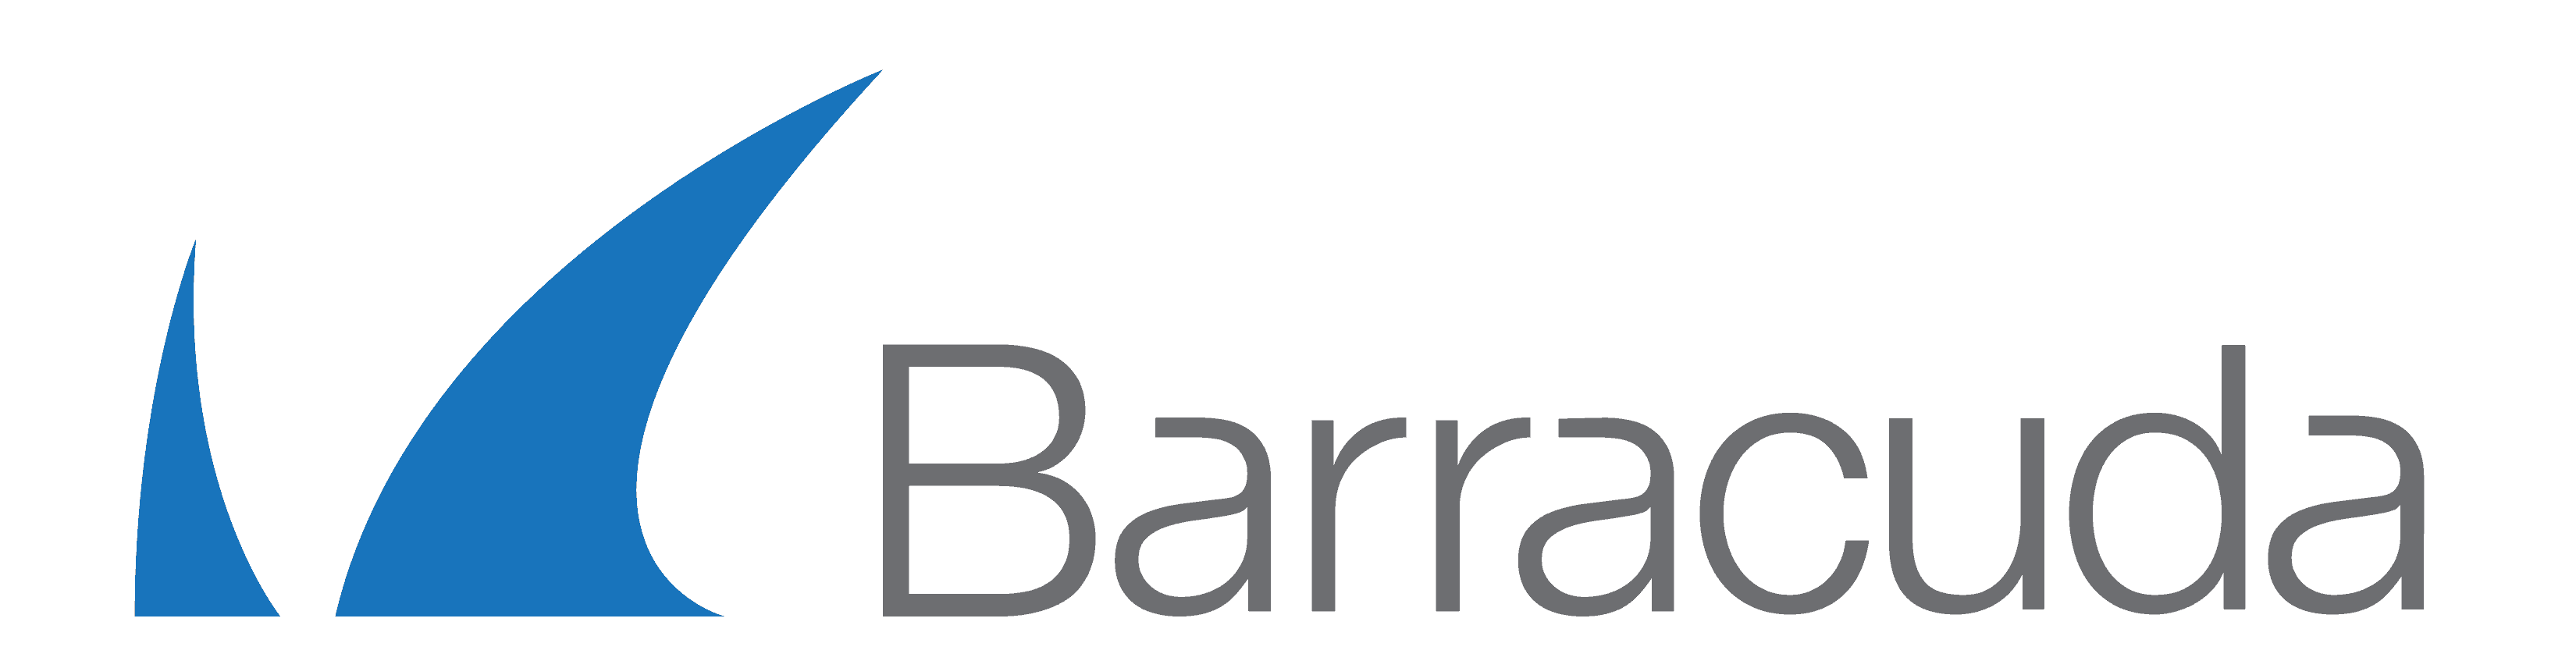 barracuda-networkslogo